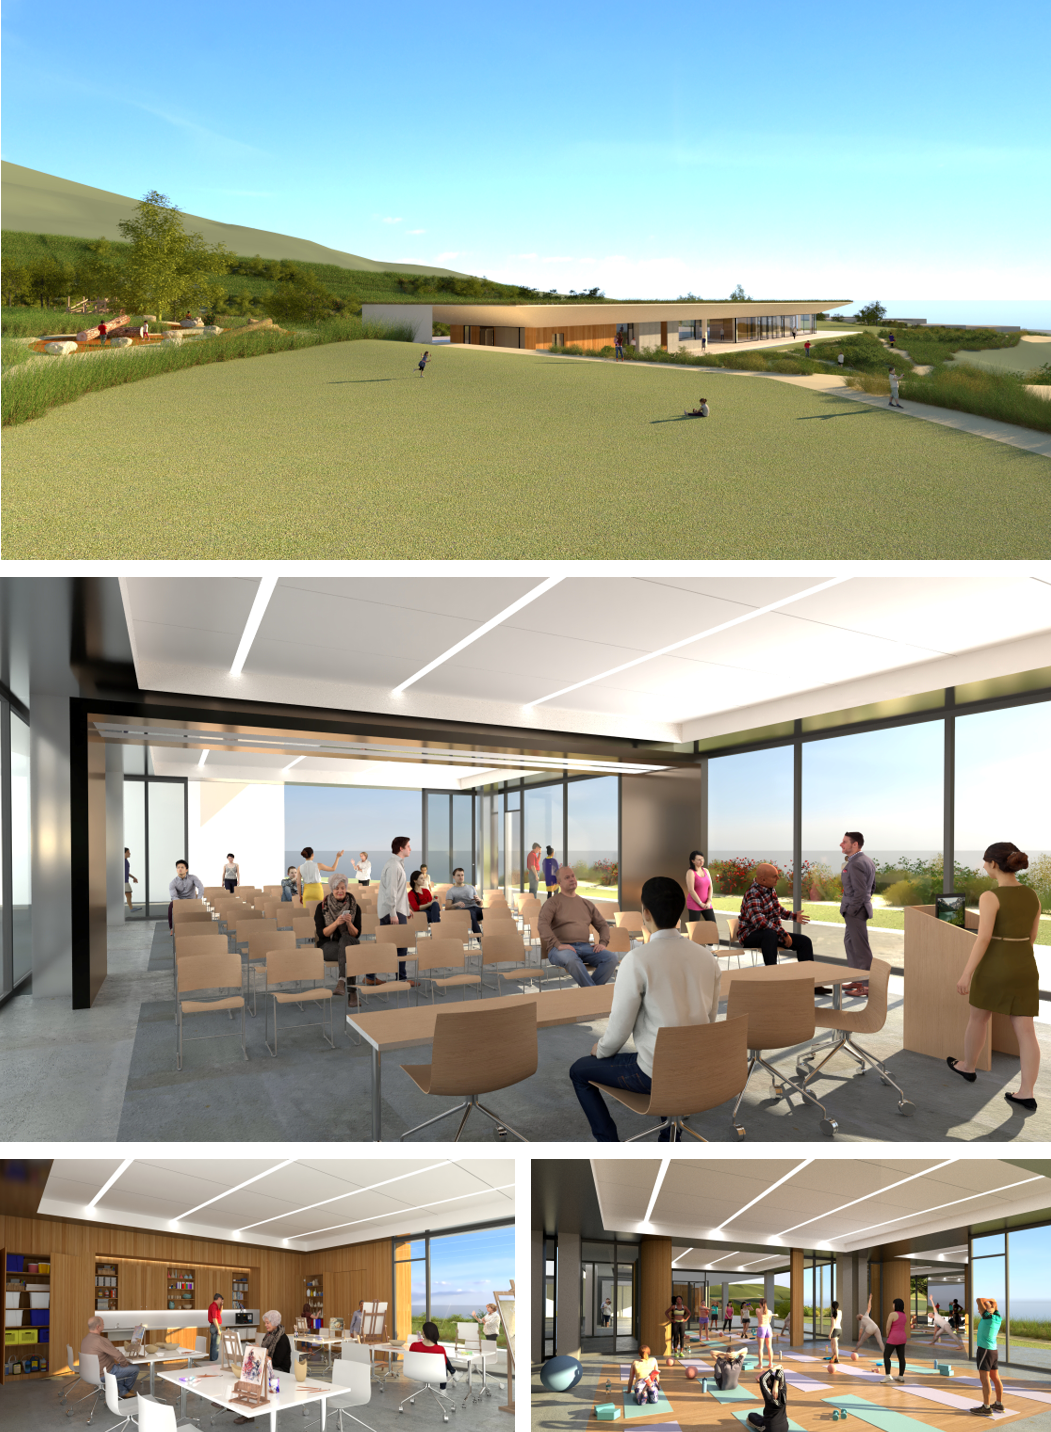 WHY COMMUNITY This community center in Rancho Palos Verdes will never yield a profit, it will probably never pay for itself and yet dividends yielded to the community will benefit generations to come.